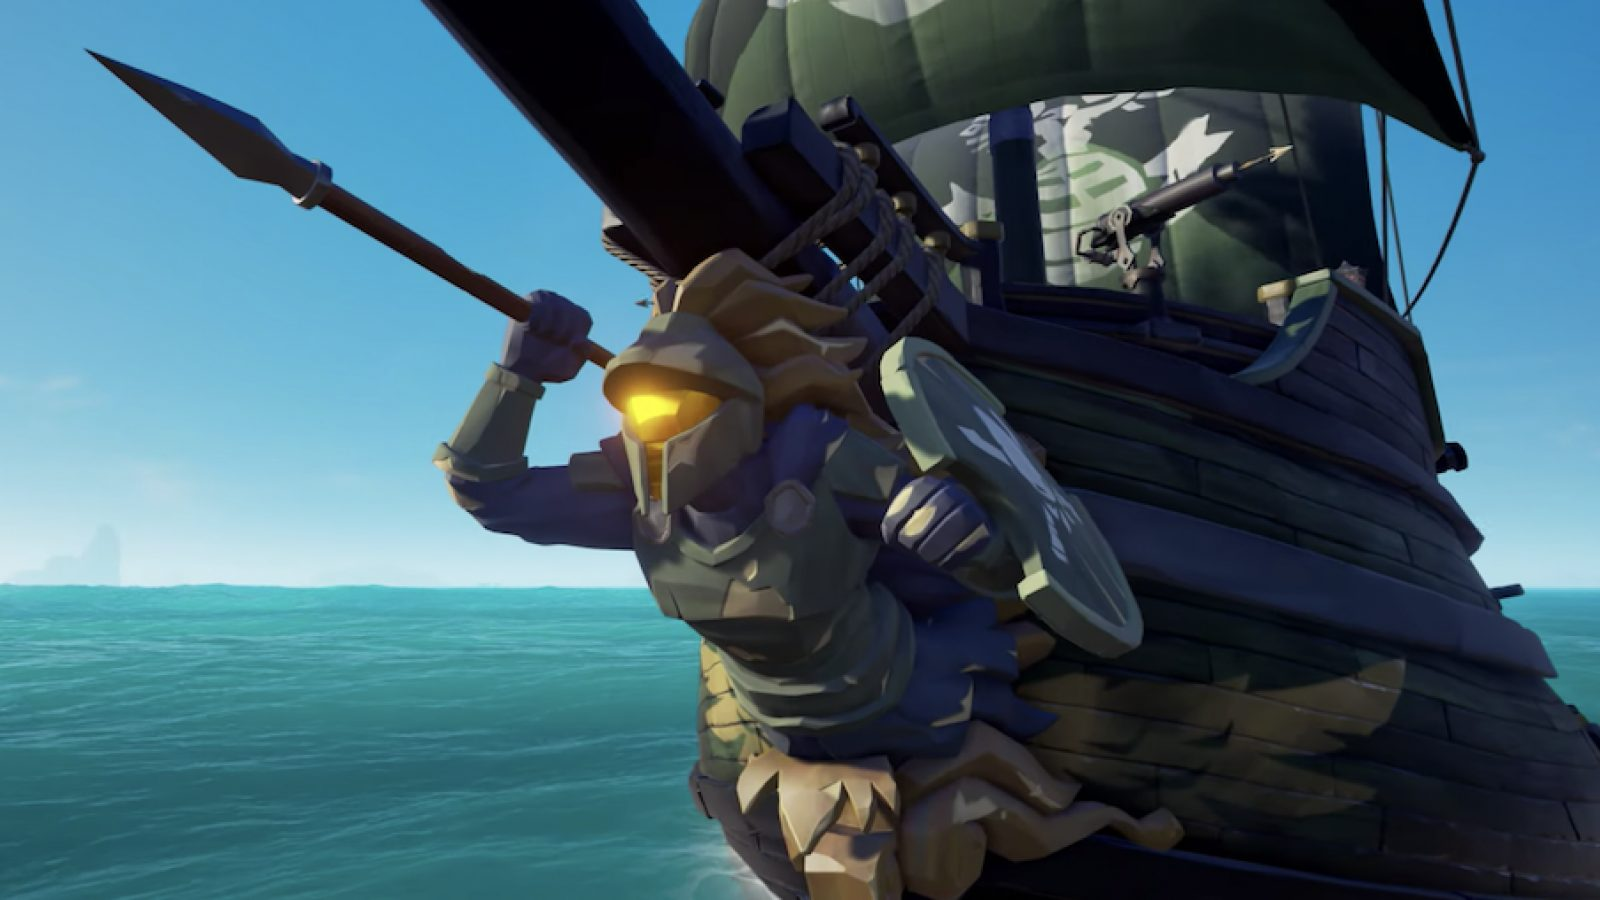 Official Sea of Thieves: Complete Spartan Ship Set Reveal Trailer